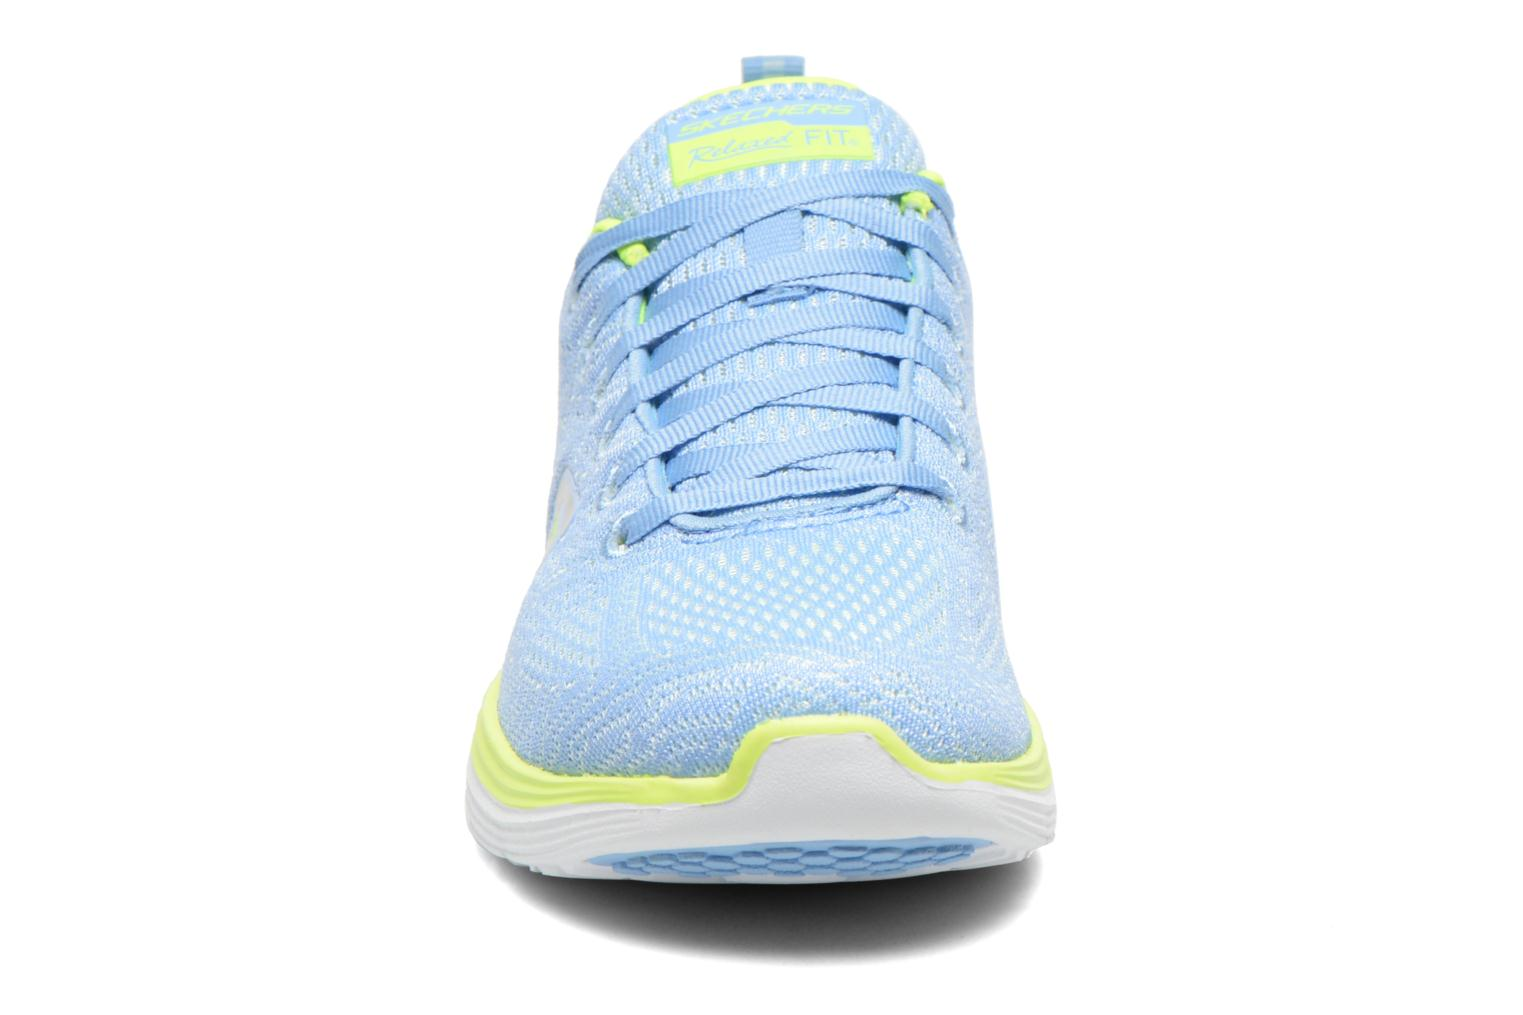 Valeris 12135 Light Blue Yellow